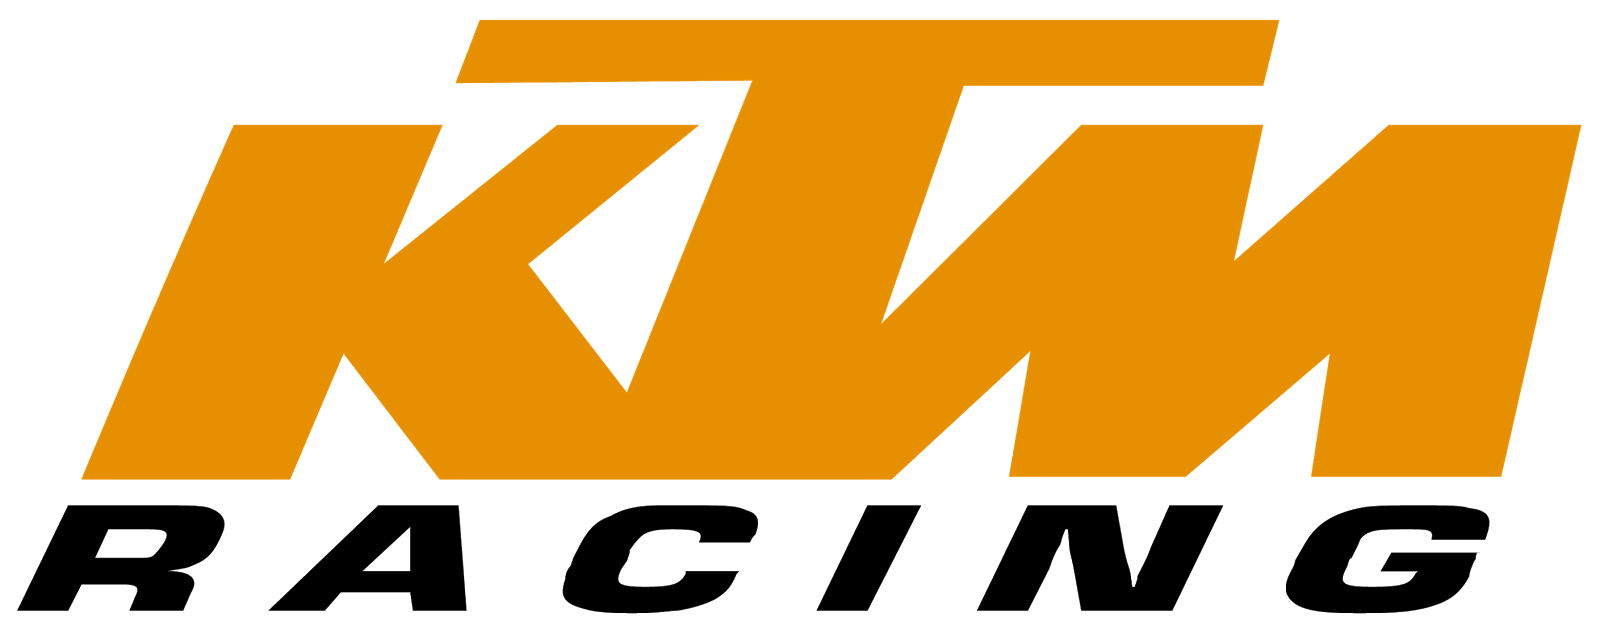 Ktm Logo Wallpapers Hd Wallpaper Cave 1036073 Png